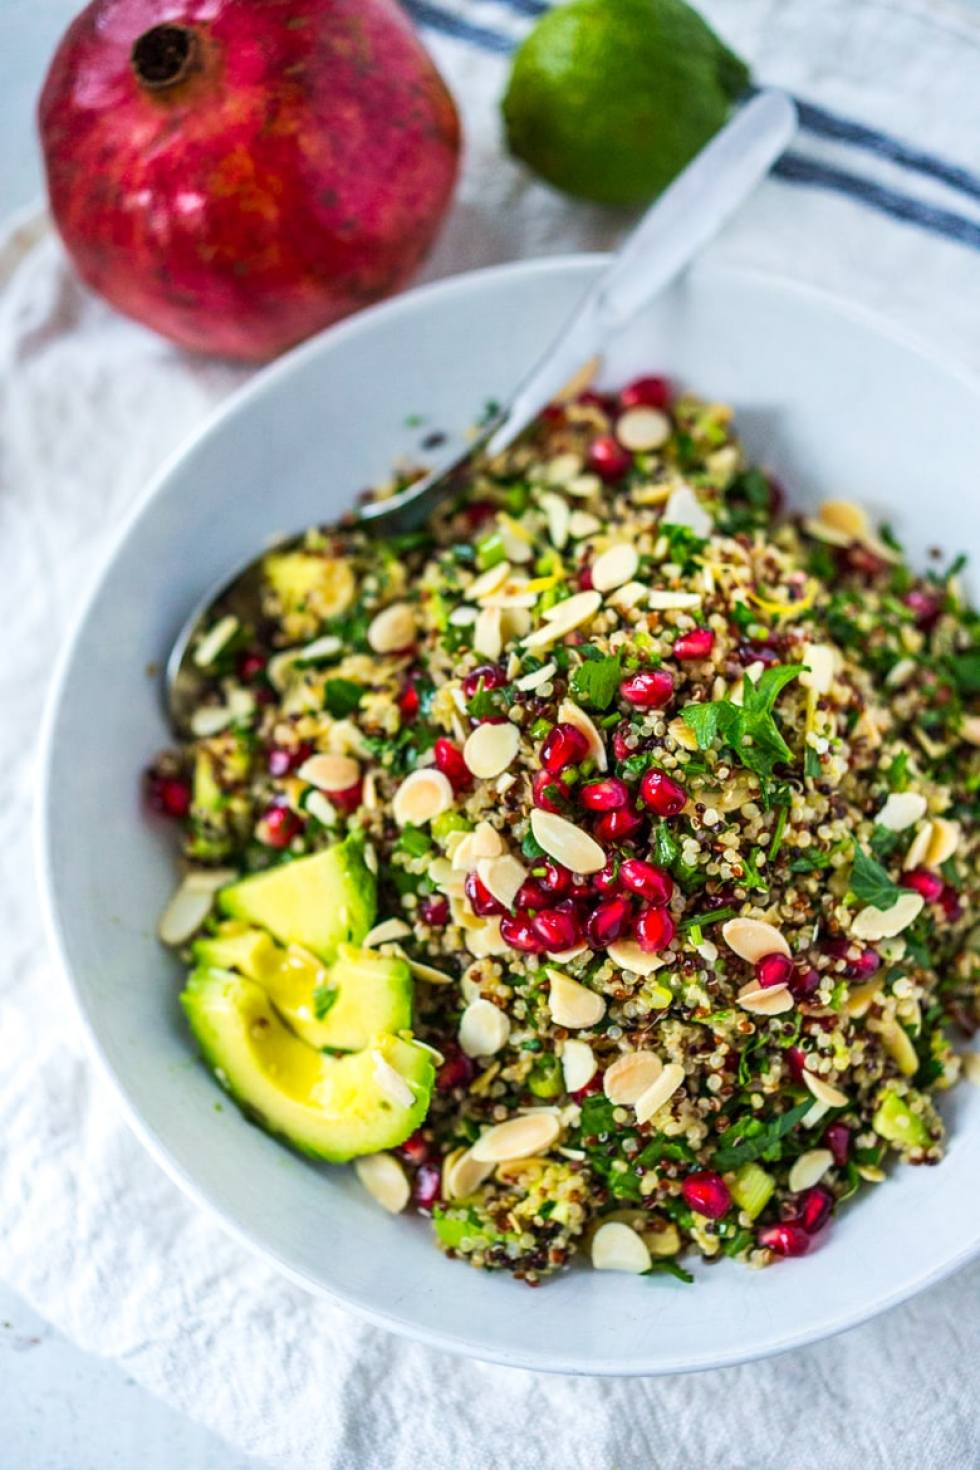 10 Clean Eating Recipes to Restore & Heal the body- Holiday Crunch Salad with Quinoa, almonds, pomegranate, a cleasning vegan and gluten free salad, high in anti-oxcidents and protein! | www.feastingathome.com